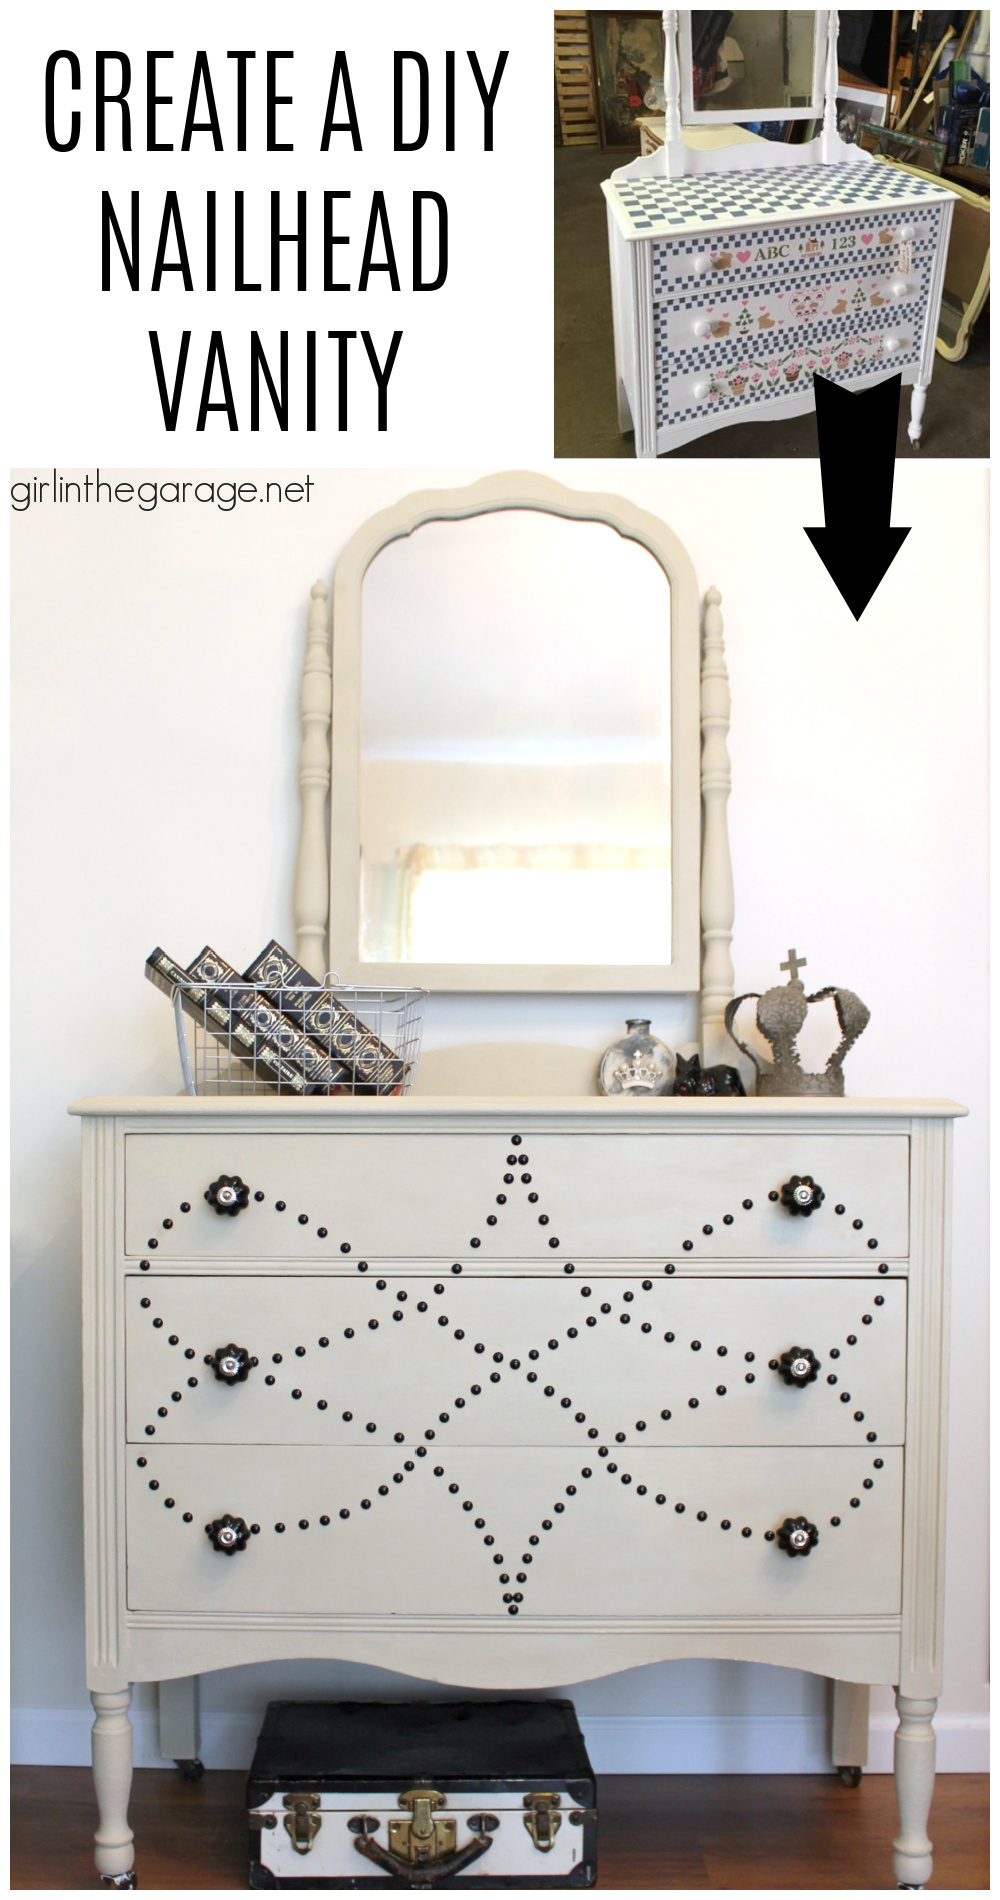 Chalk Painted Vanity Makeover - See how a dated vanity is transformed with Chalk Paint, nailhead trim, and beautiful new knobs. By Girl in the Garage